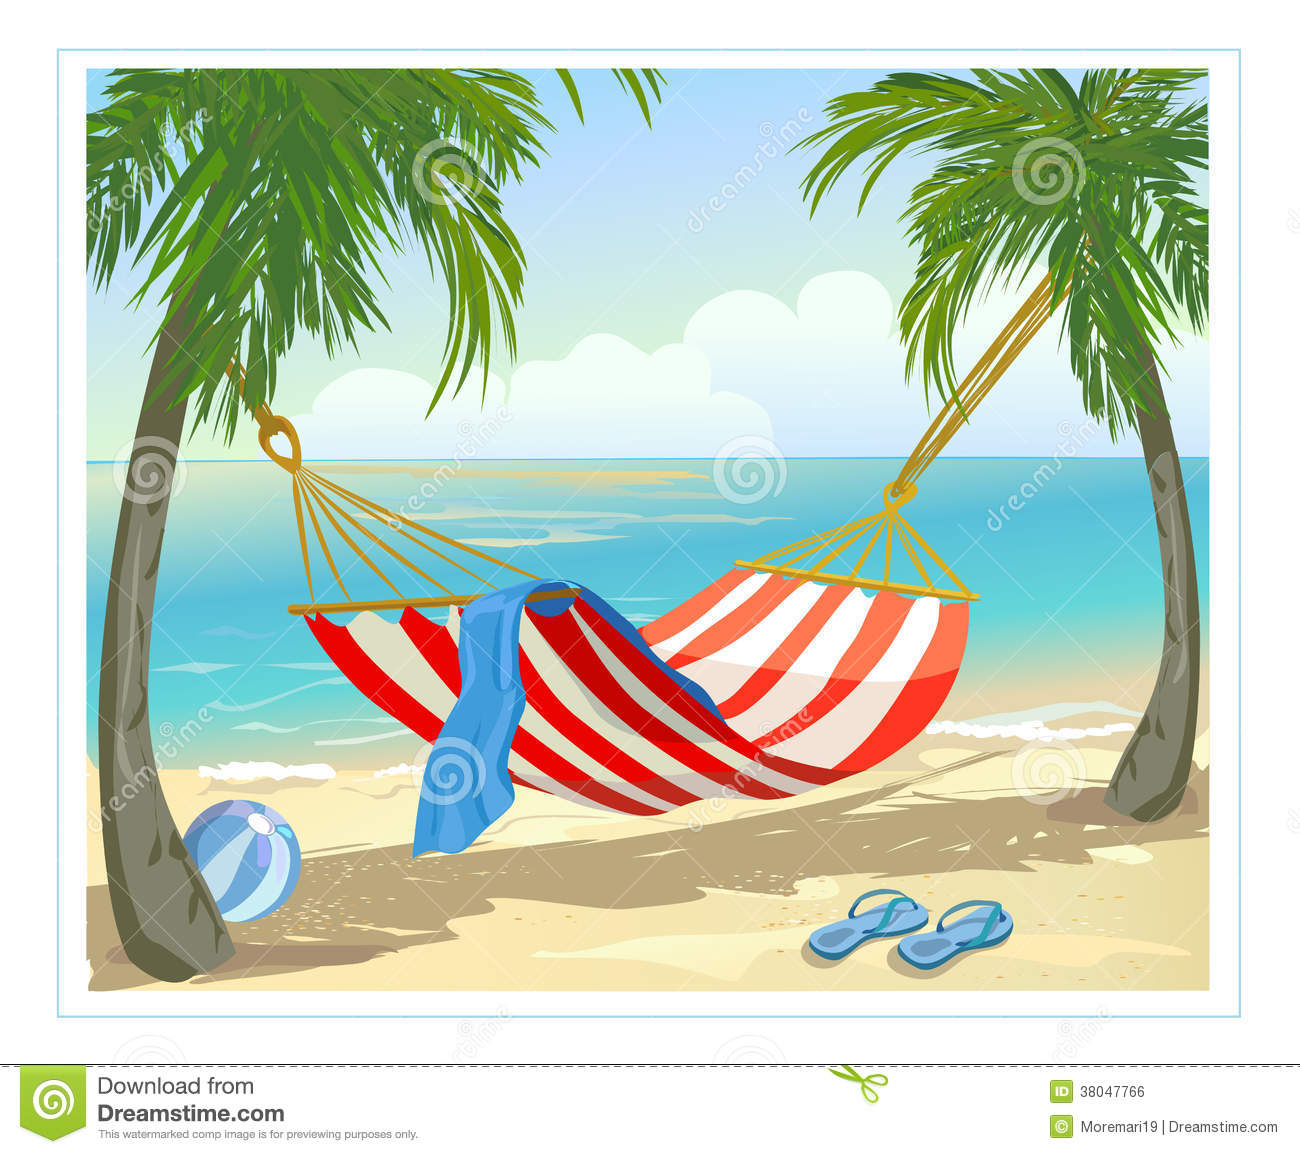 Hammock Palm Trees On The Beach Vector Illustration Royalty Free Stock Image